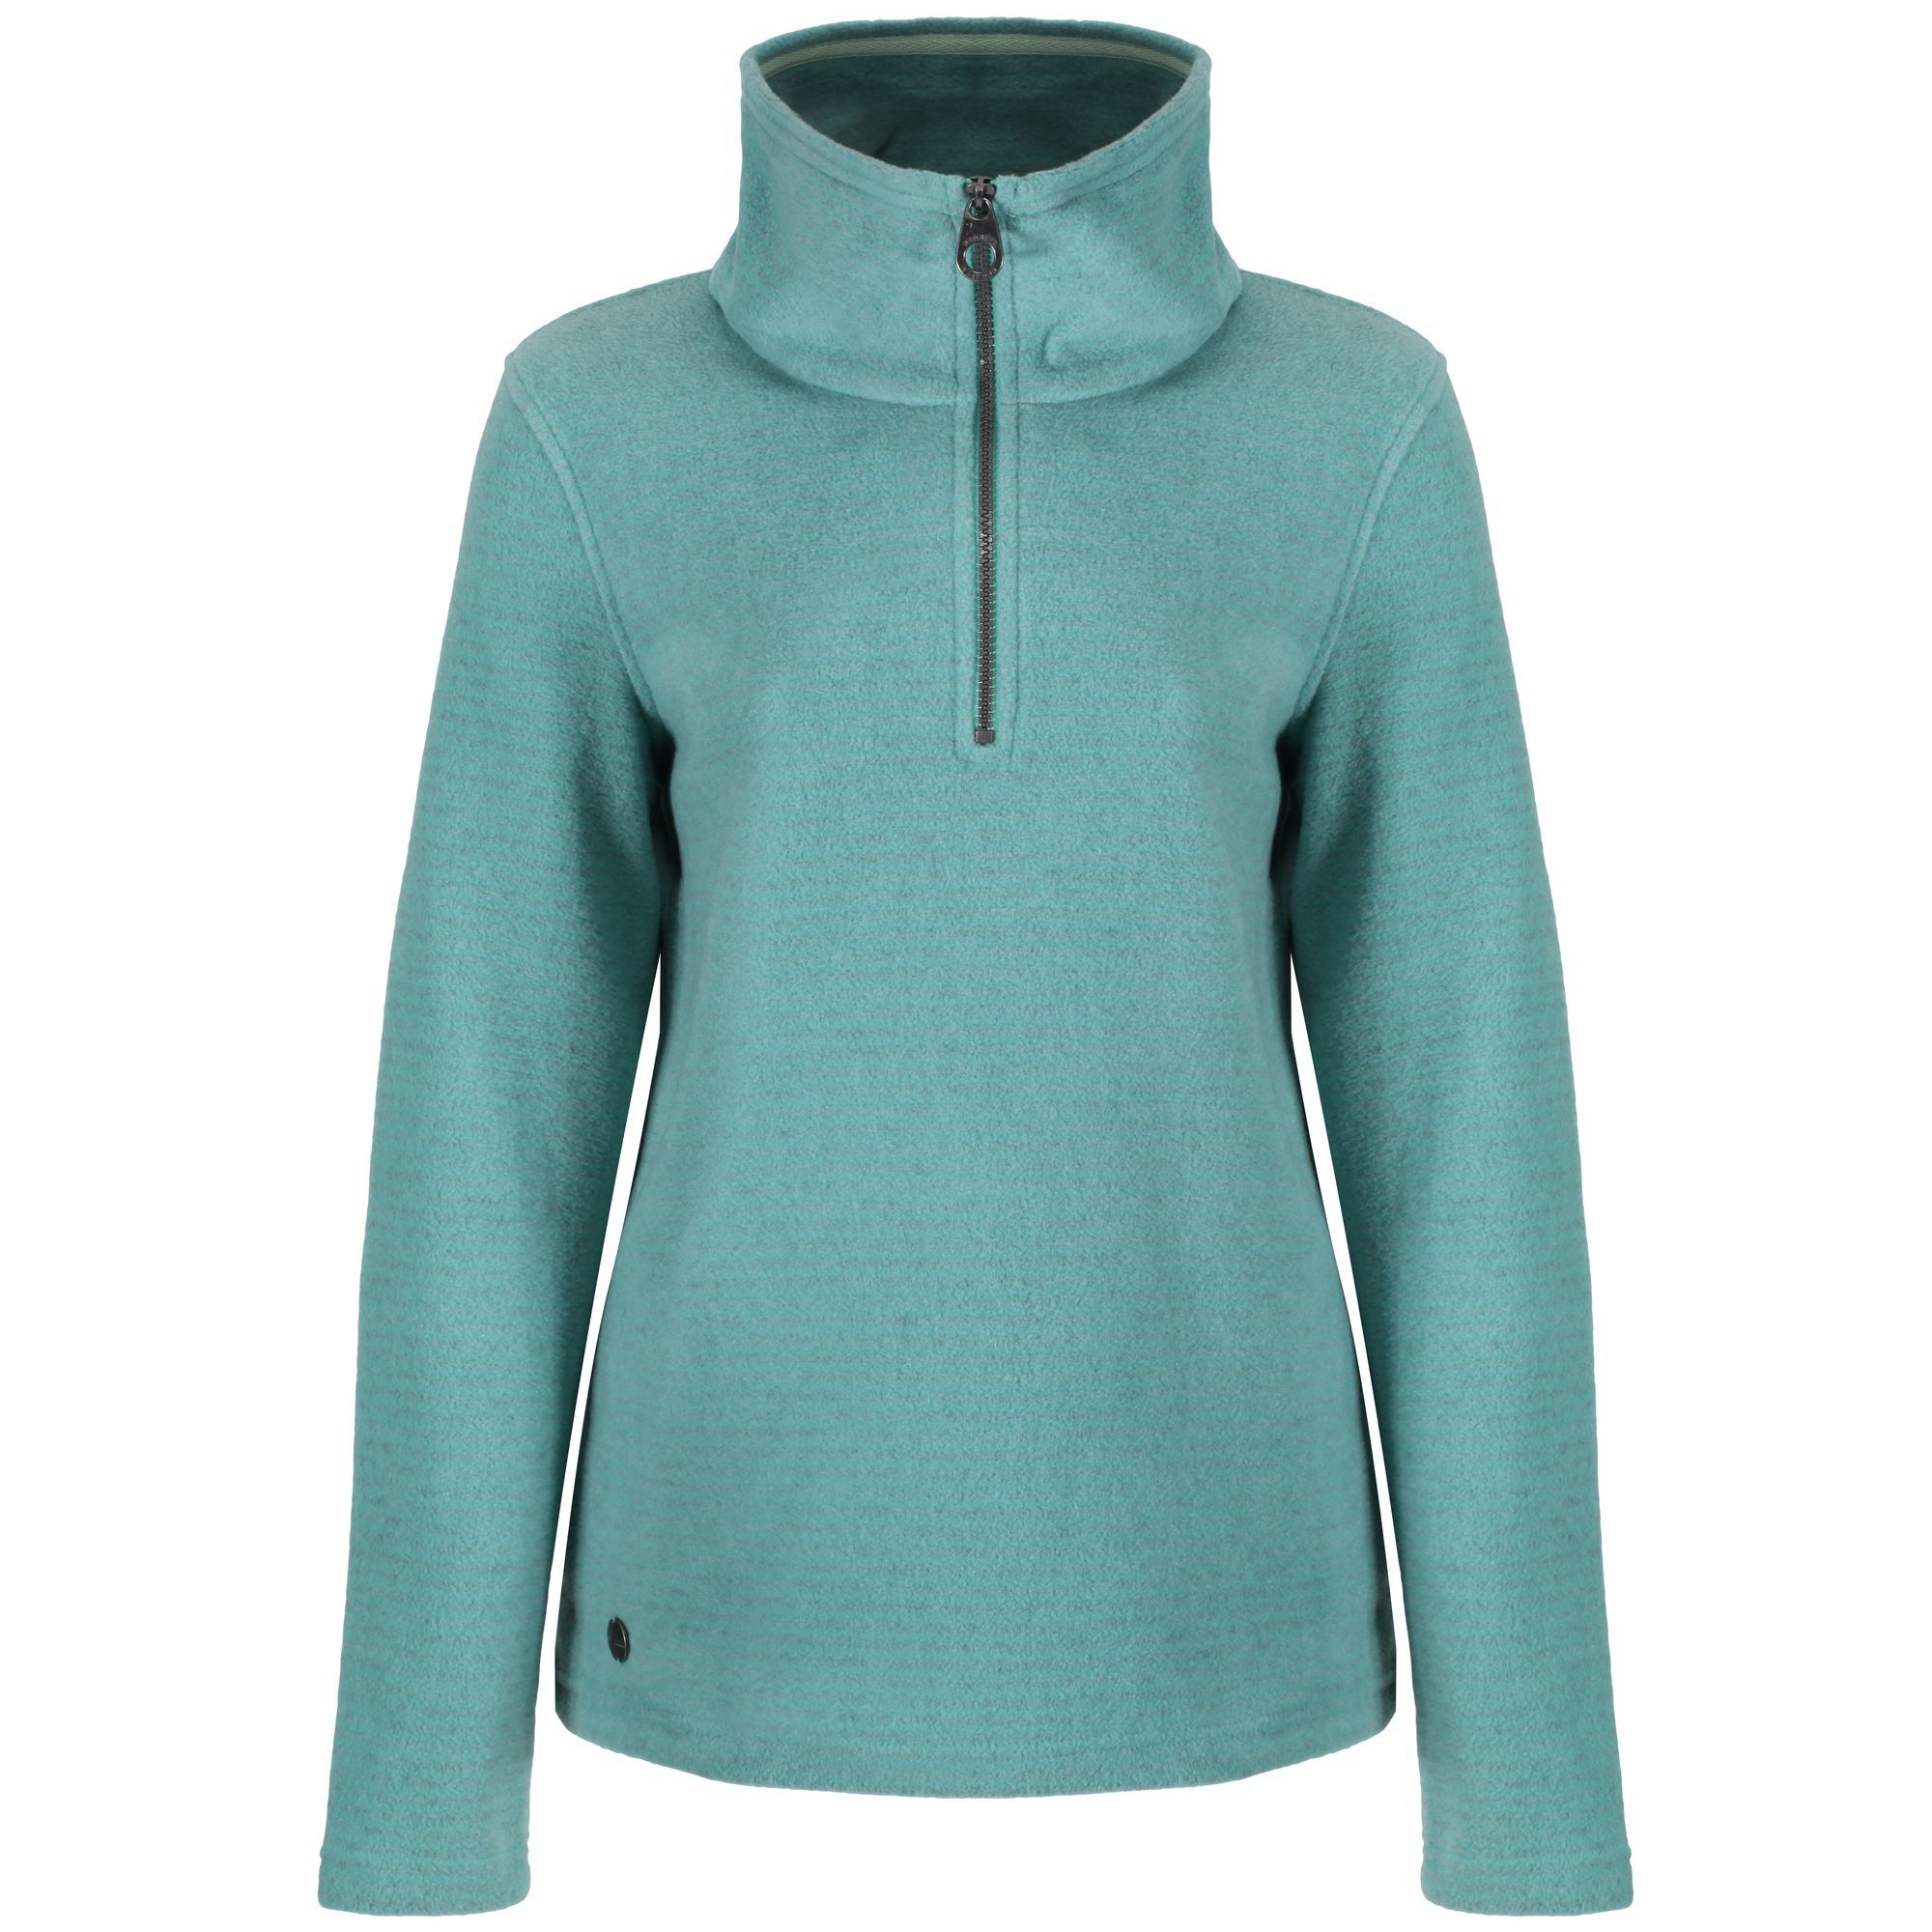 Regatta Solenne Sweater, Jade